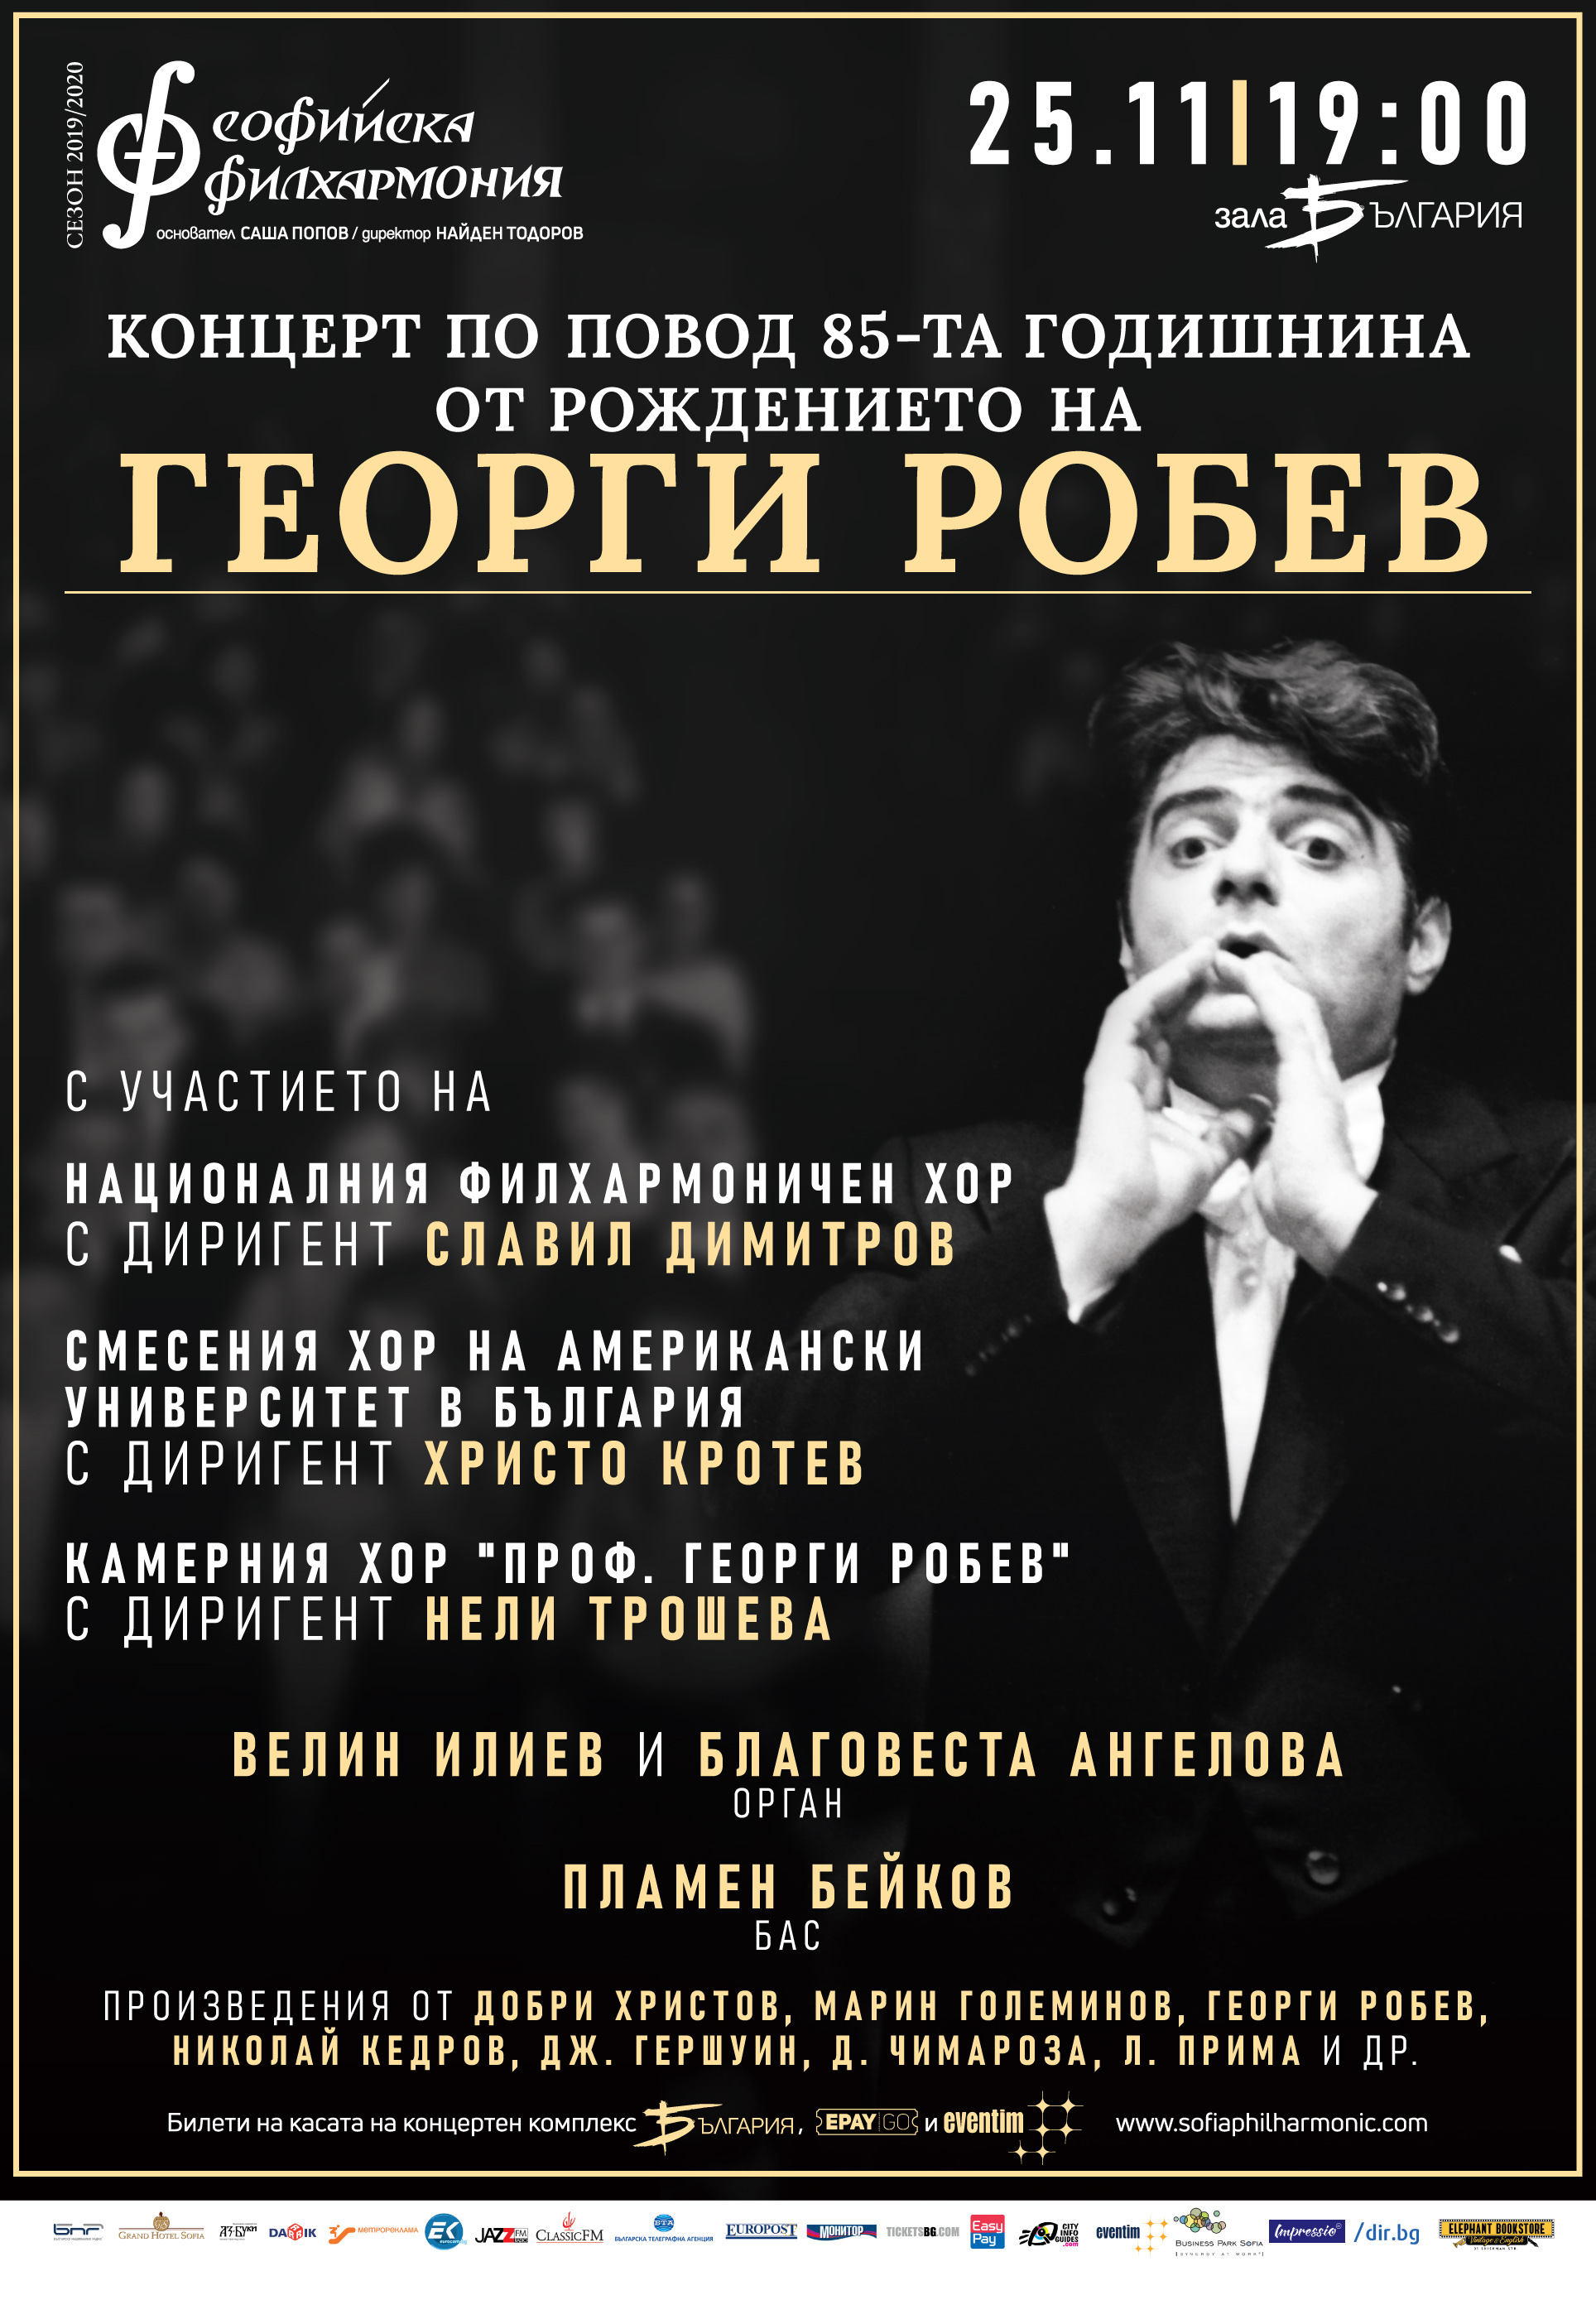 Concert Dedicated to the 85th Anniversary of Prof. Georgi Robev